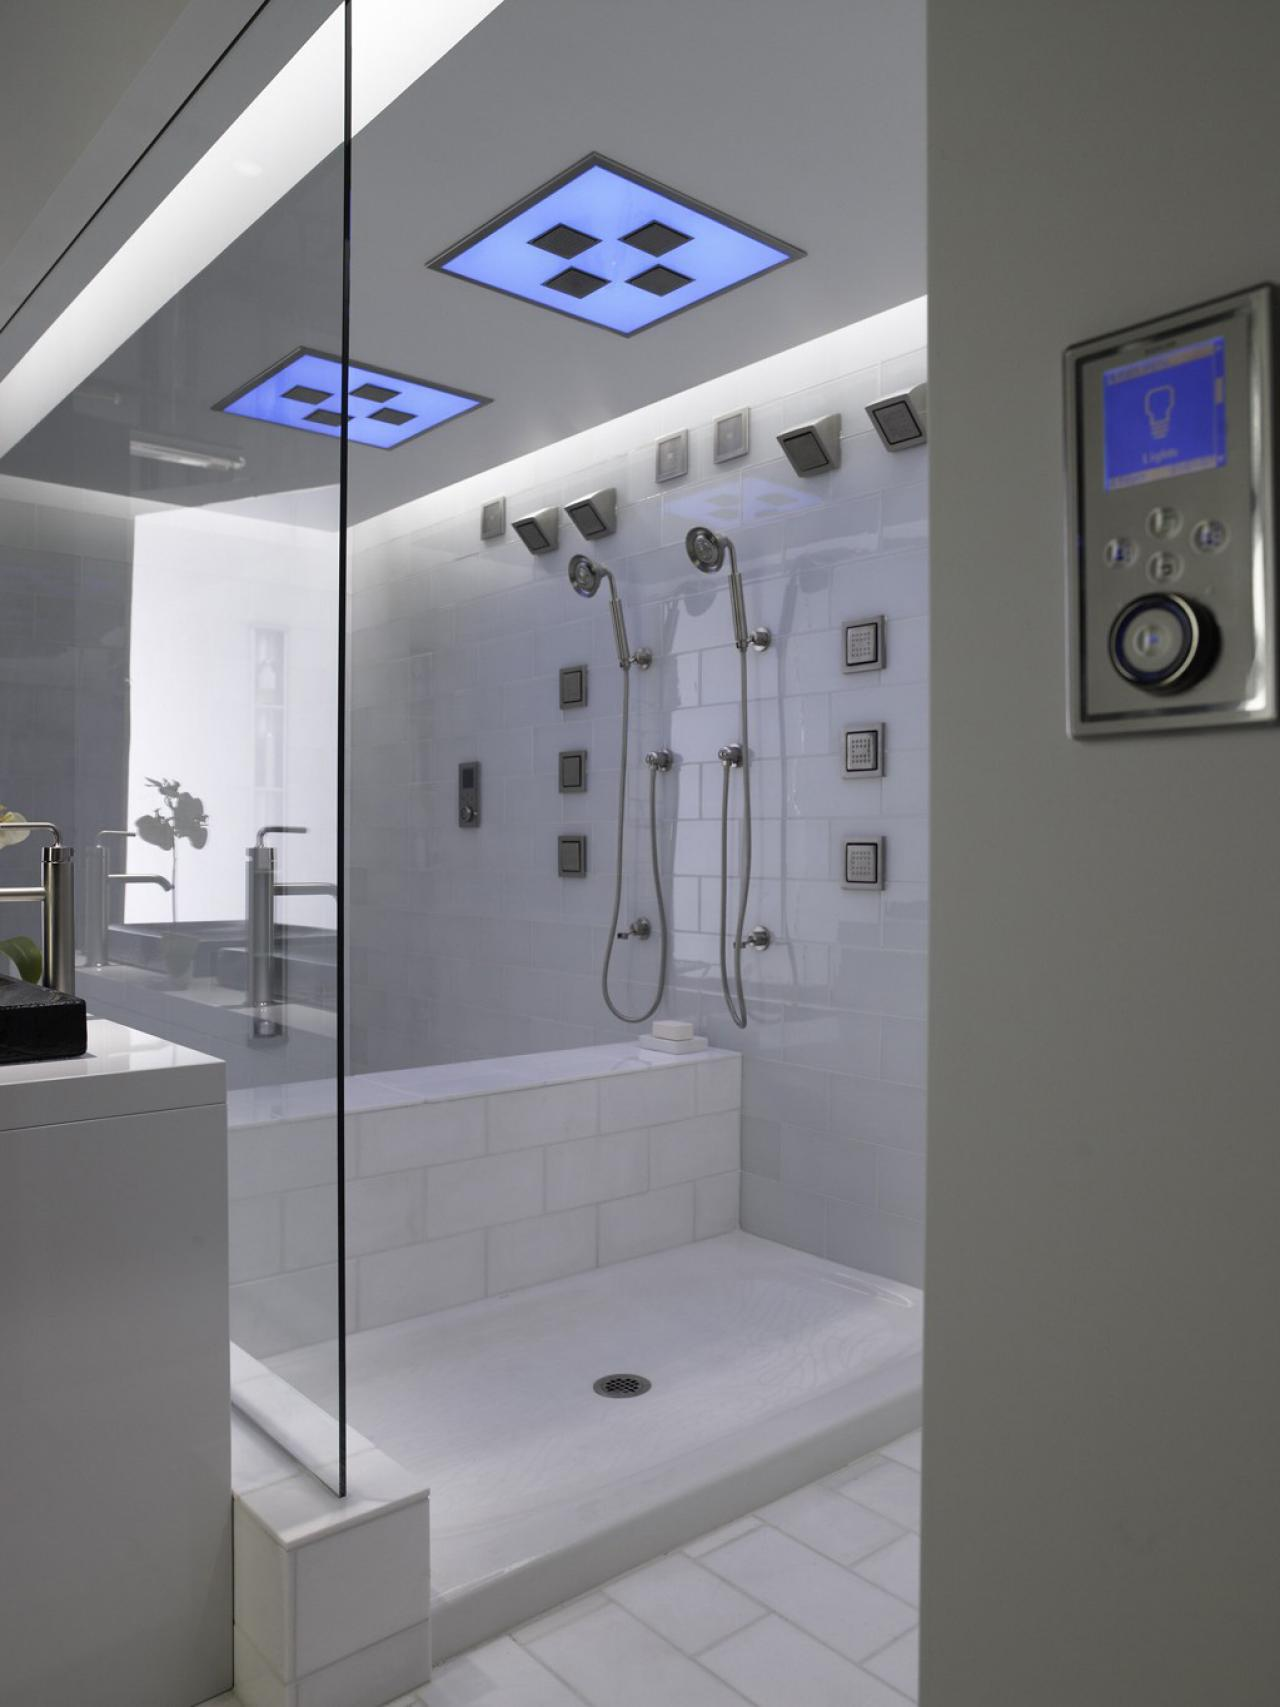 Kohler Tub And Shower : Universal Design Showers: Safety and Luxury HGTV